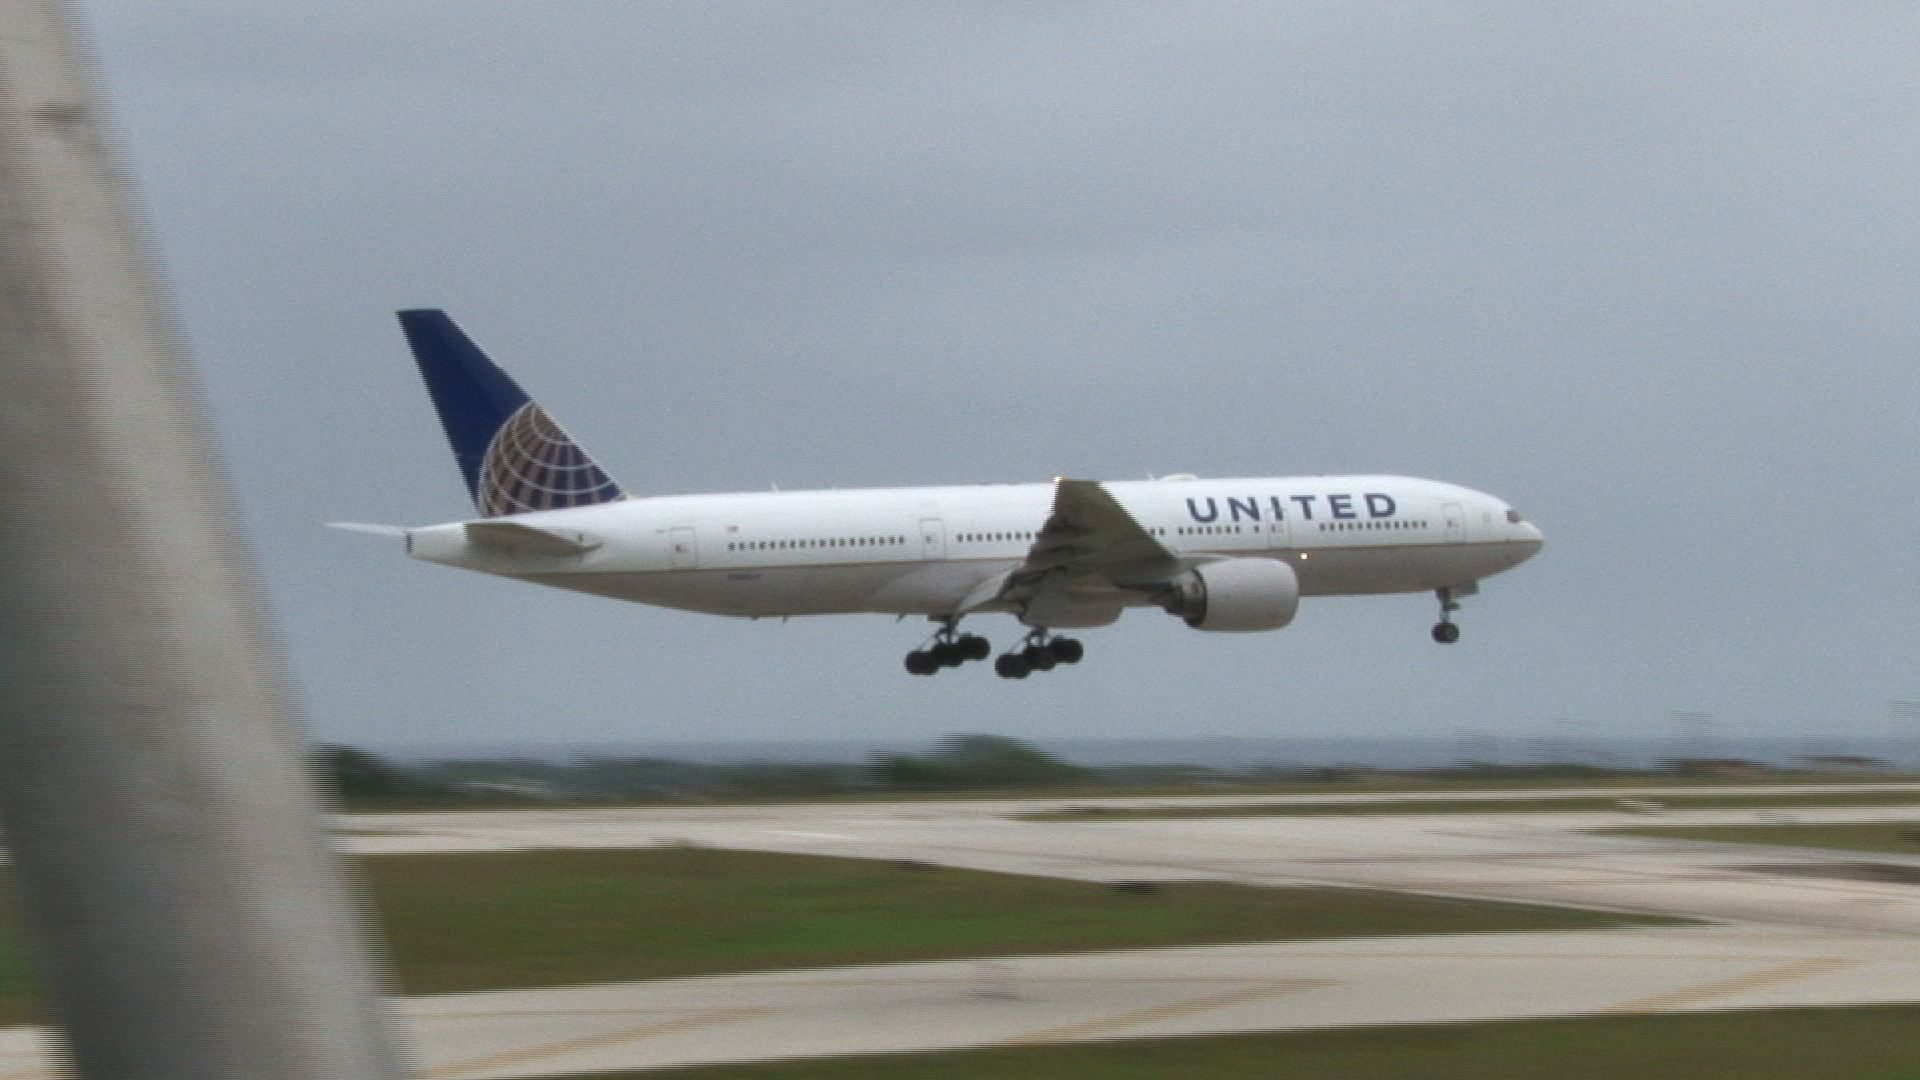 United Airlines Resuming Service On More Than 25 International Routes In September Pnc News First,Modern Rustic Interior Design Ideas